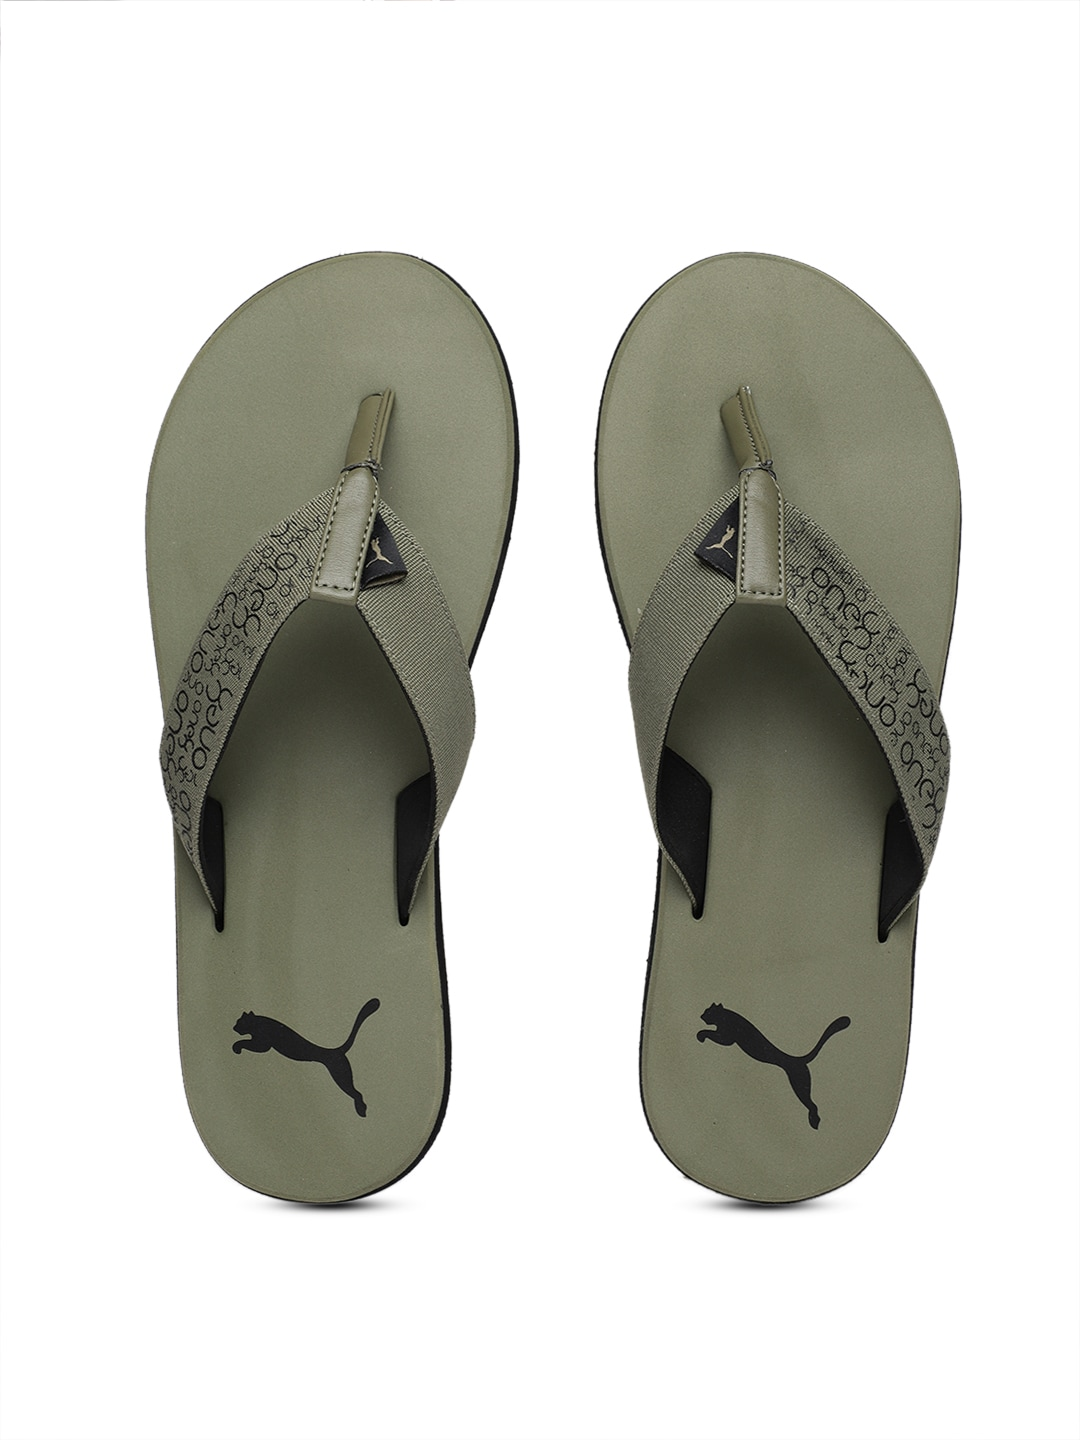 df00bc5d03d1 Puma Slippers - Buy Puma Slippers Online at Best Price